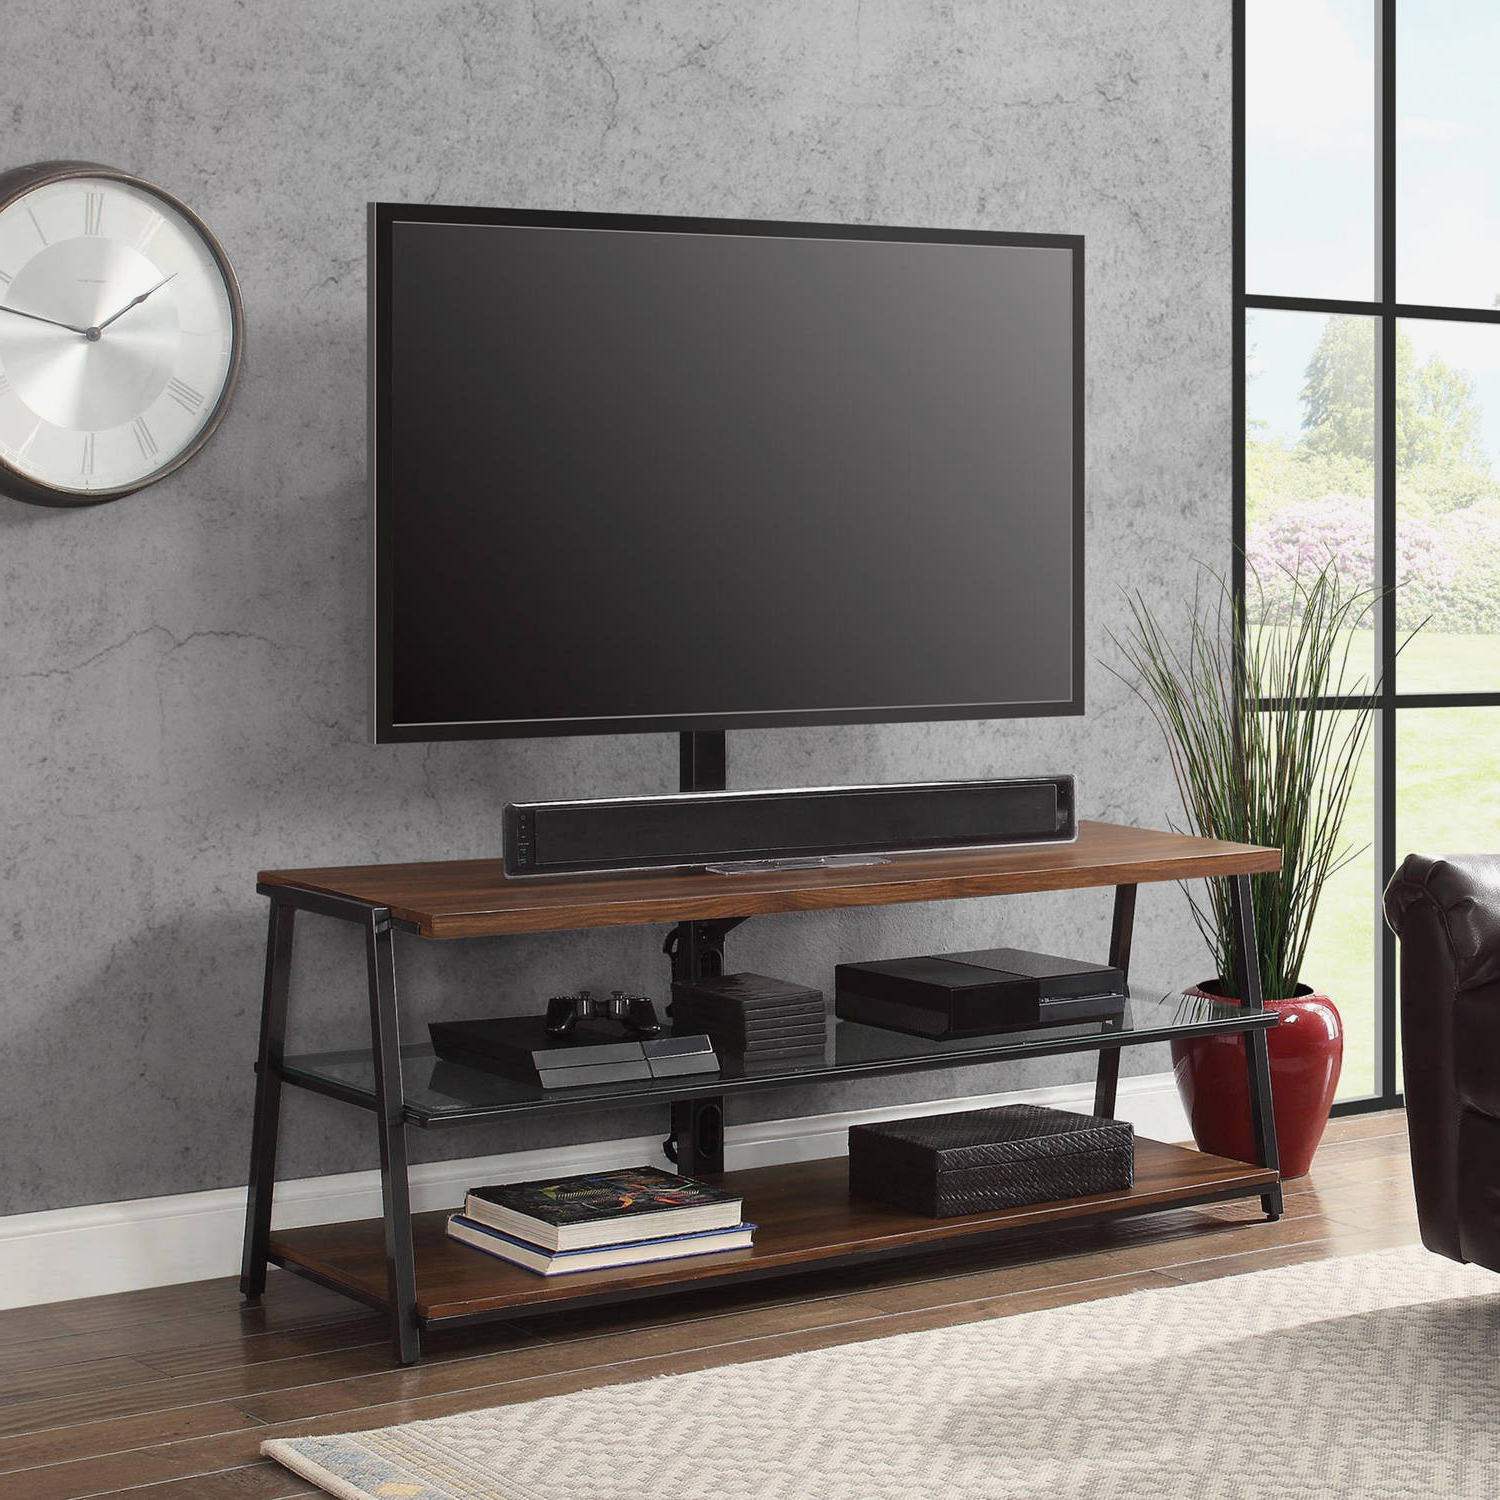 Recent Fancy Tv Stands Intended For Fireplace : Top Costco Fireplace Tv Stand Artistic Color Decor Fancy (Gallery 11 of 20)